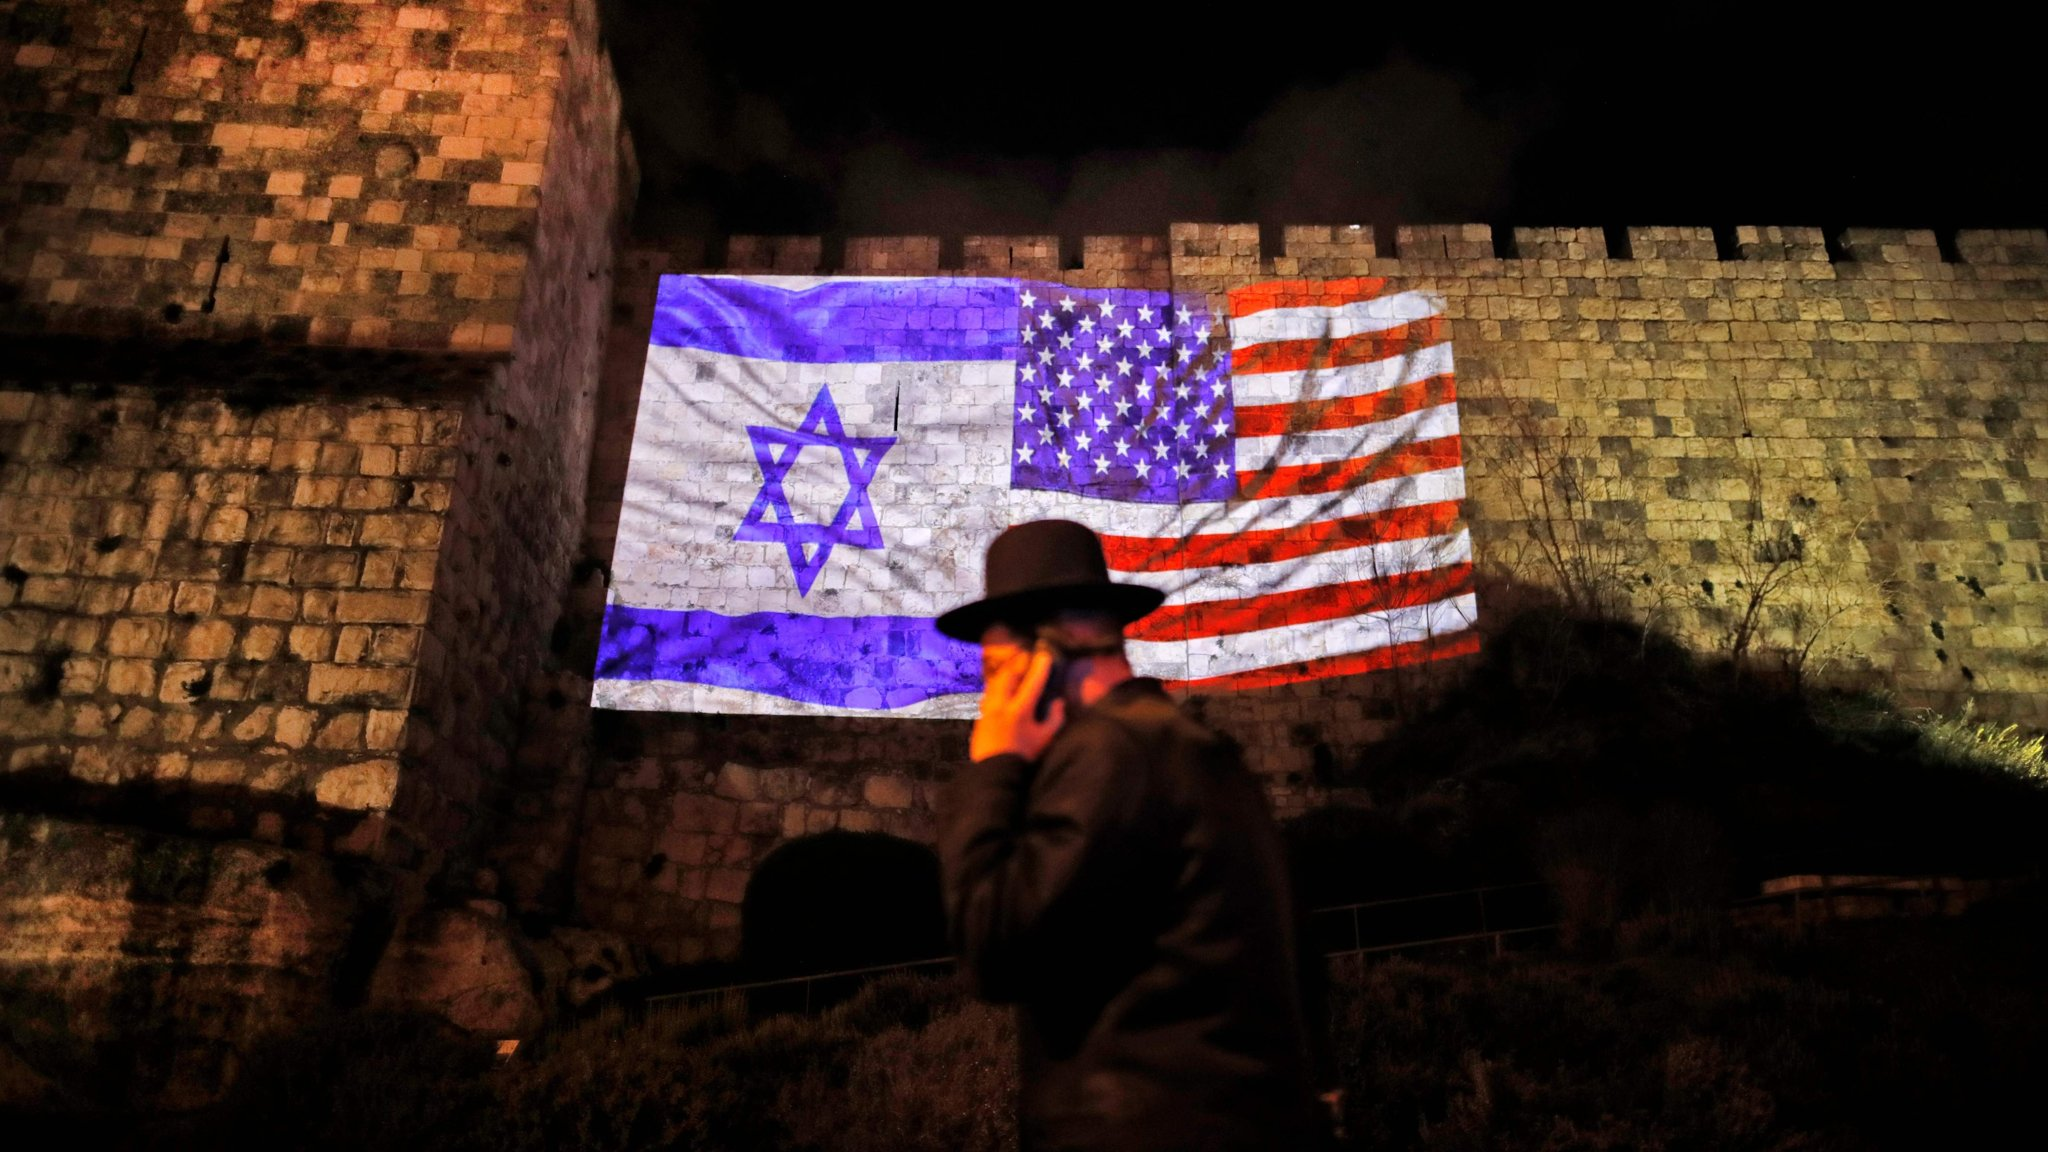 Trump's dangerous decision on Jerusalem